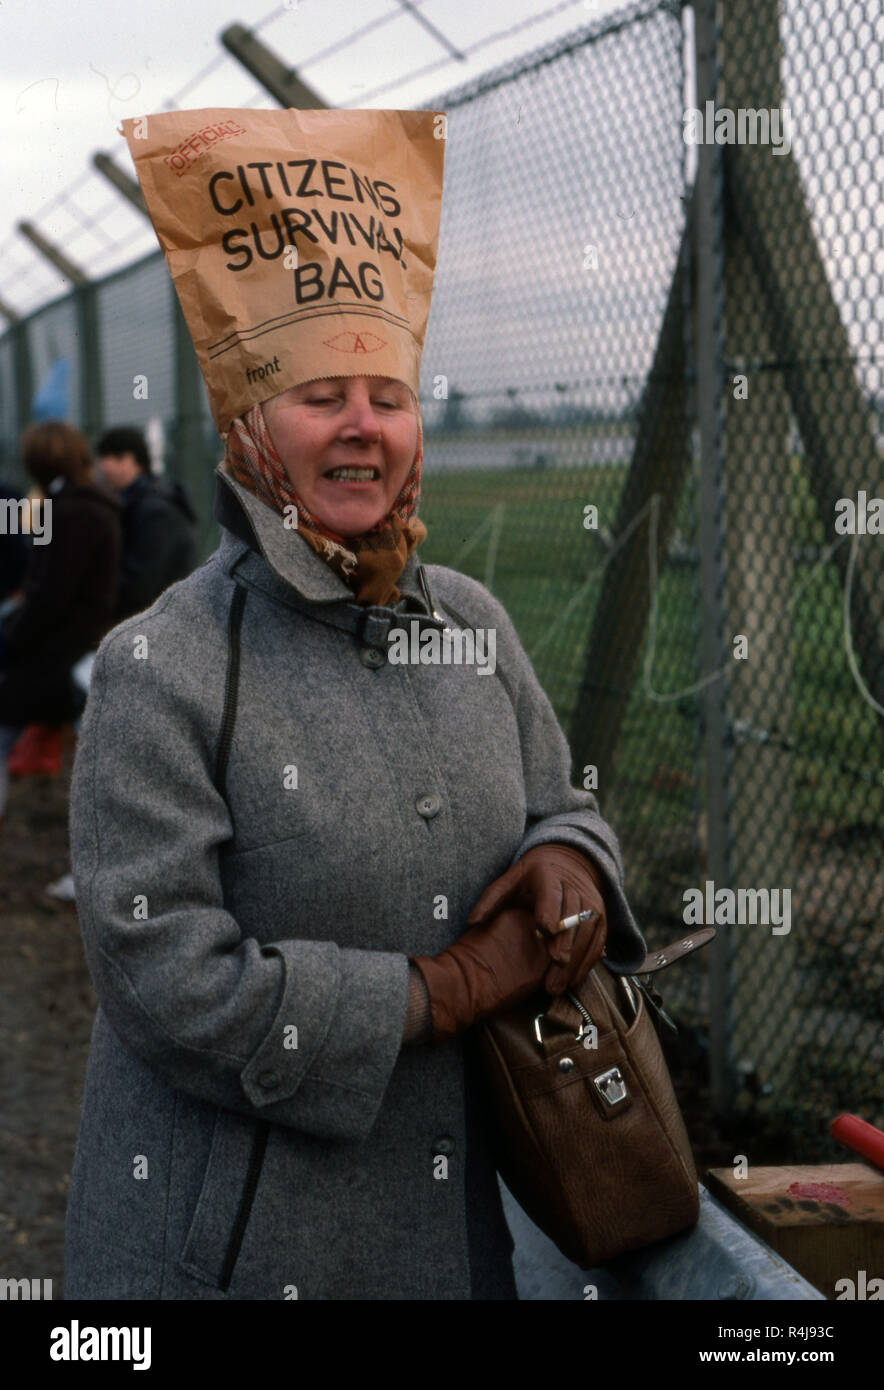 Woman at an Anti-nuclear protest against the replacement of the old trident missile systems at Greenham Common wearing a paper bag on her head entitled Citizens Survival Bag - Stock Image